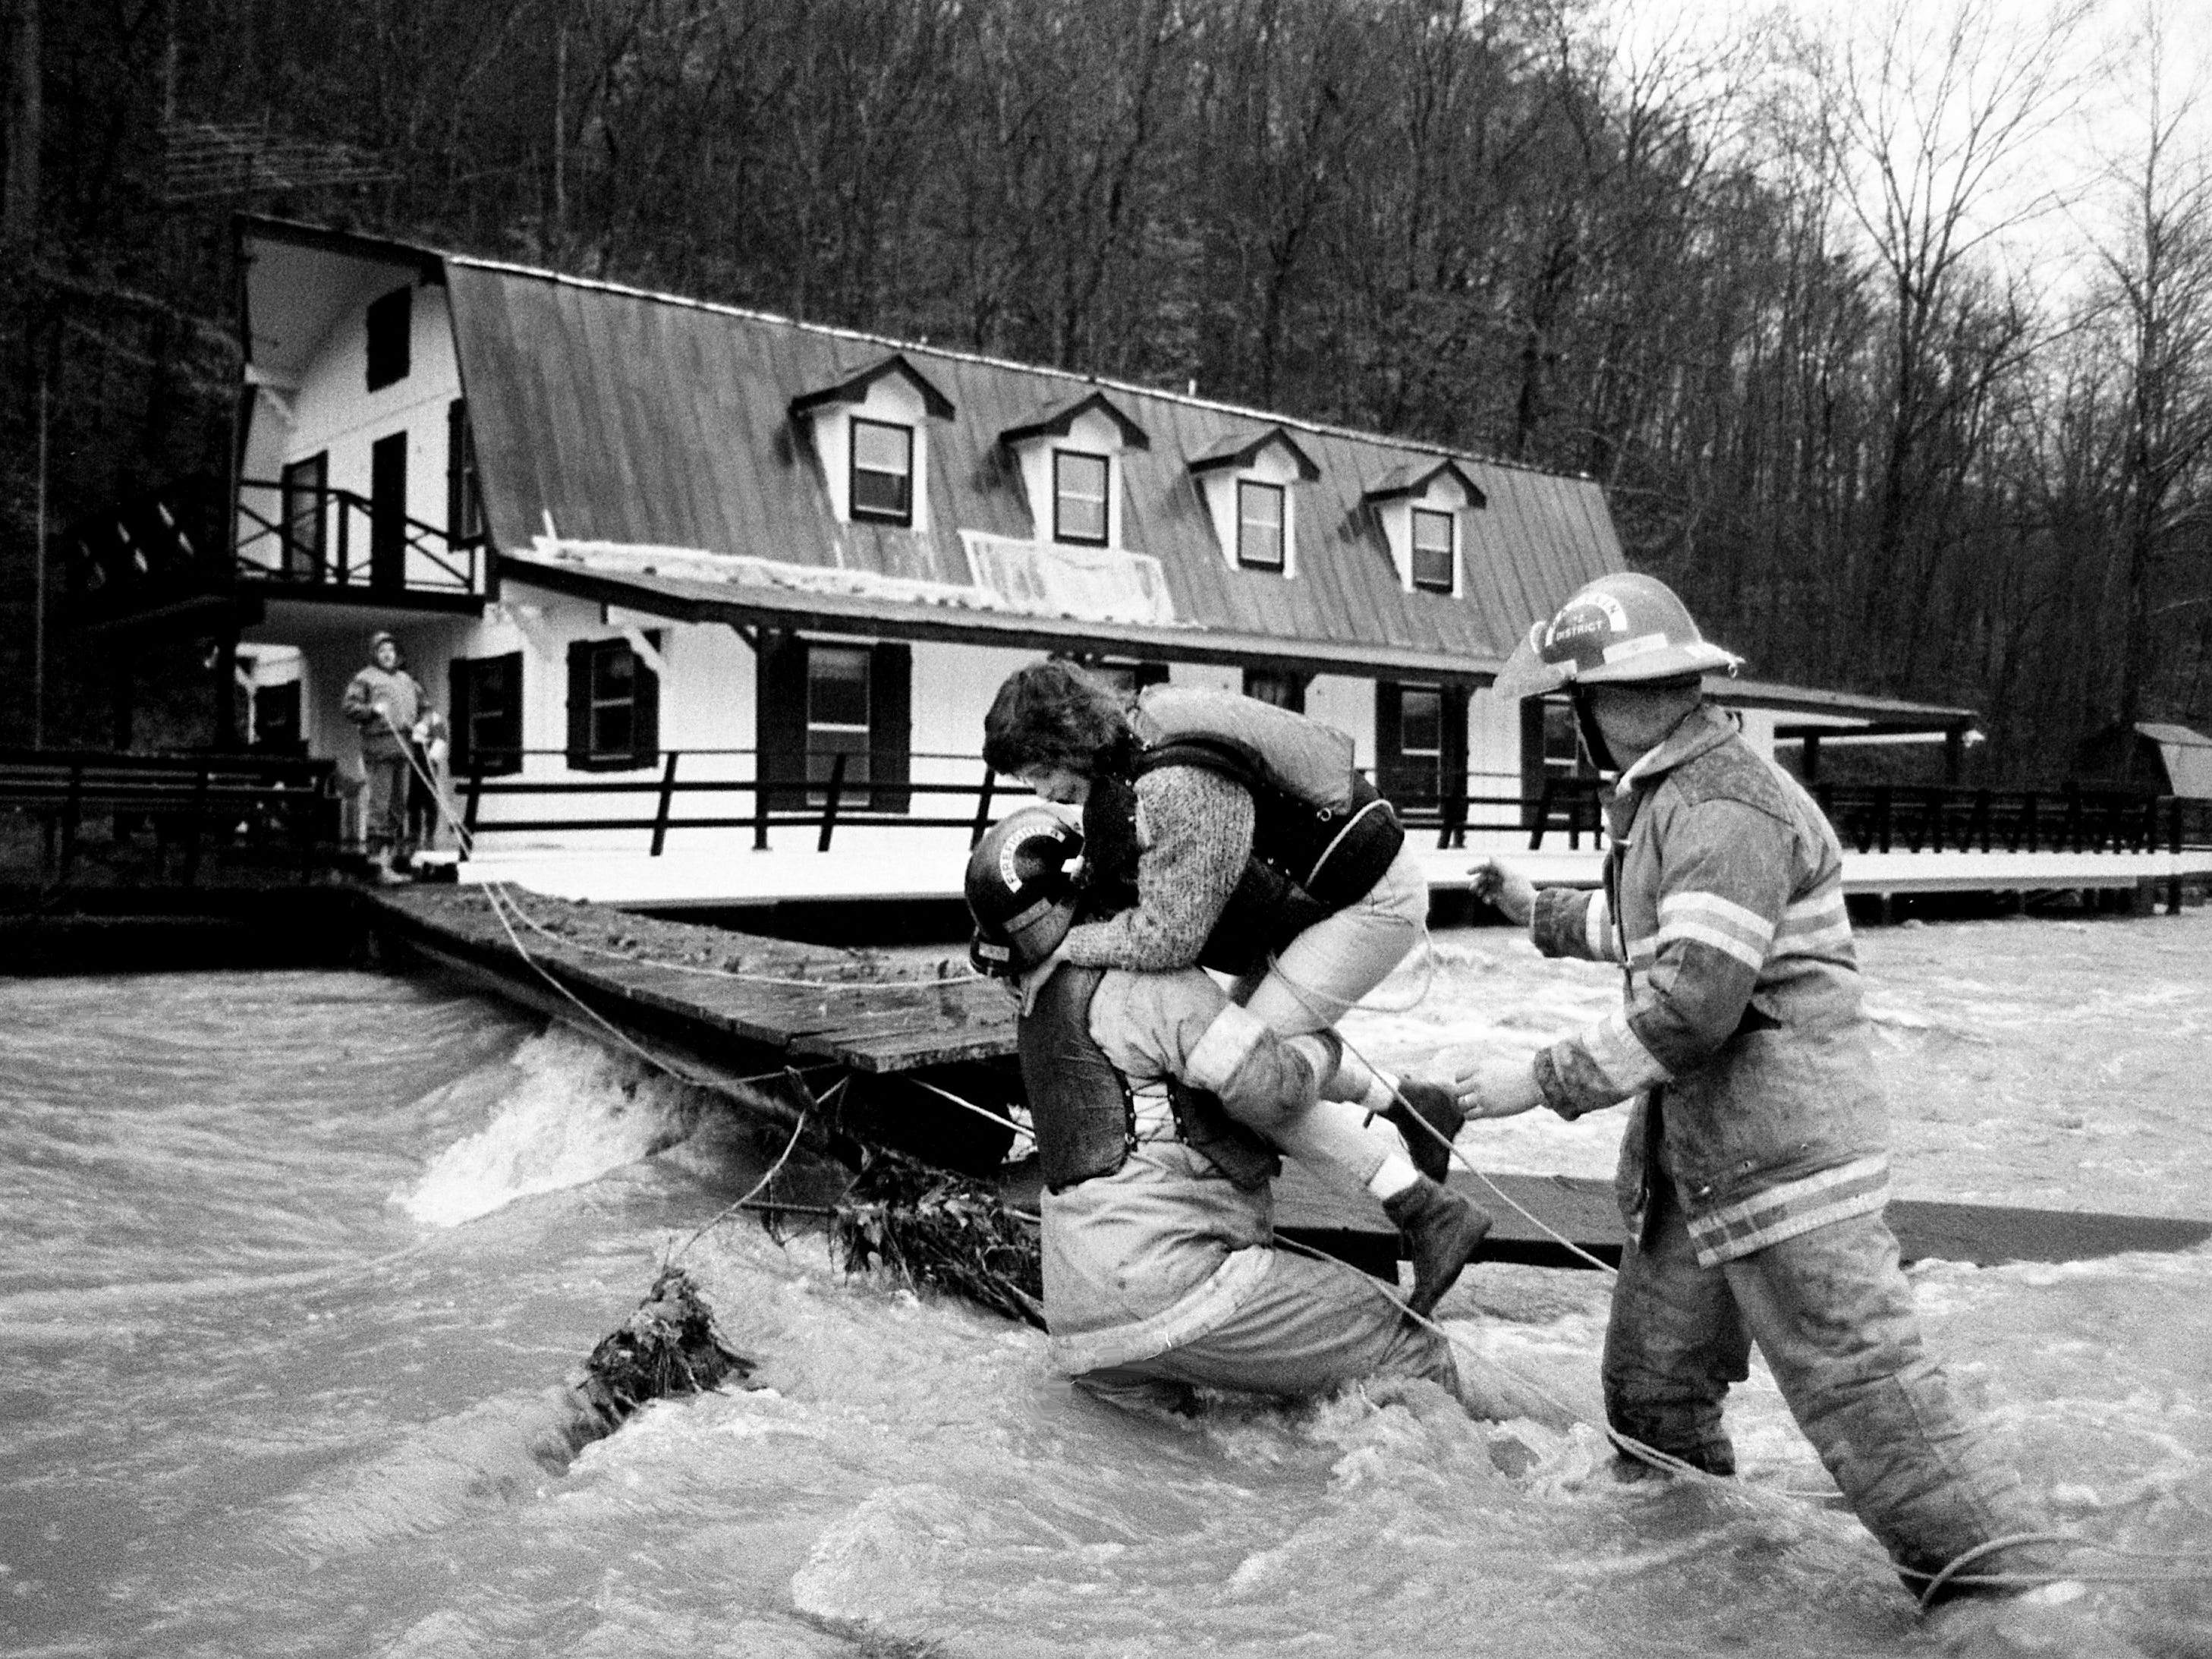 Kandi Wood, center, is rescued by Tim Hood, left, and Capt. Campbell Rice of the Williamson County Rescue Squad on Feb. 14, 1989, after rising floodwaters trapper her, her husband and their 6-year-old daughter in their home on Highway 96 west of Franklin.